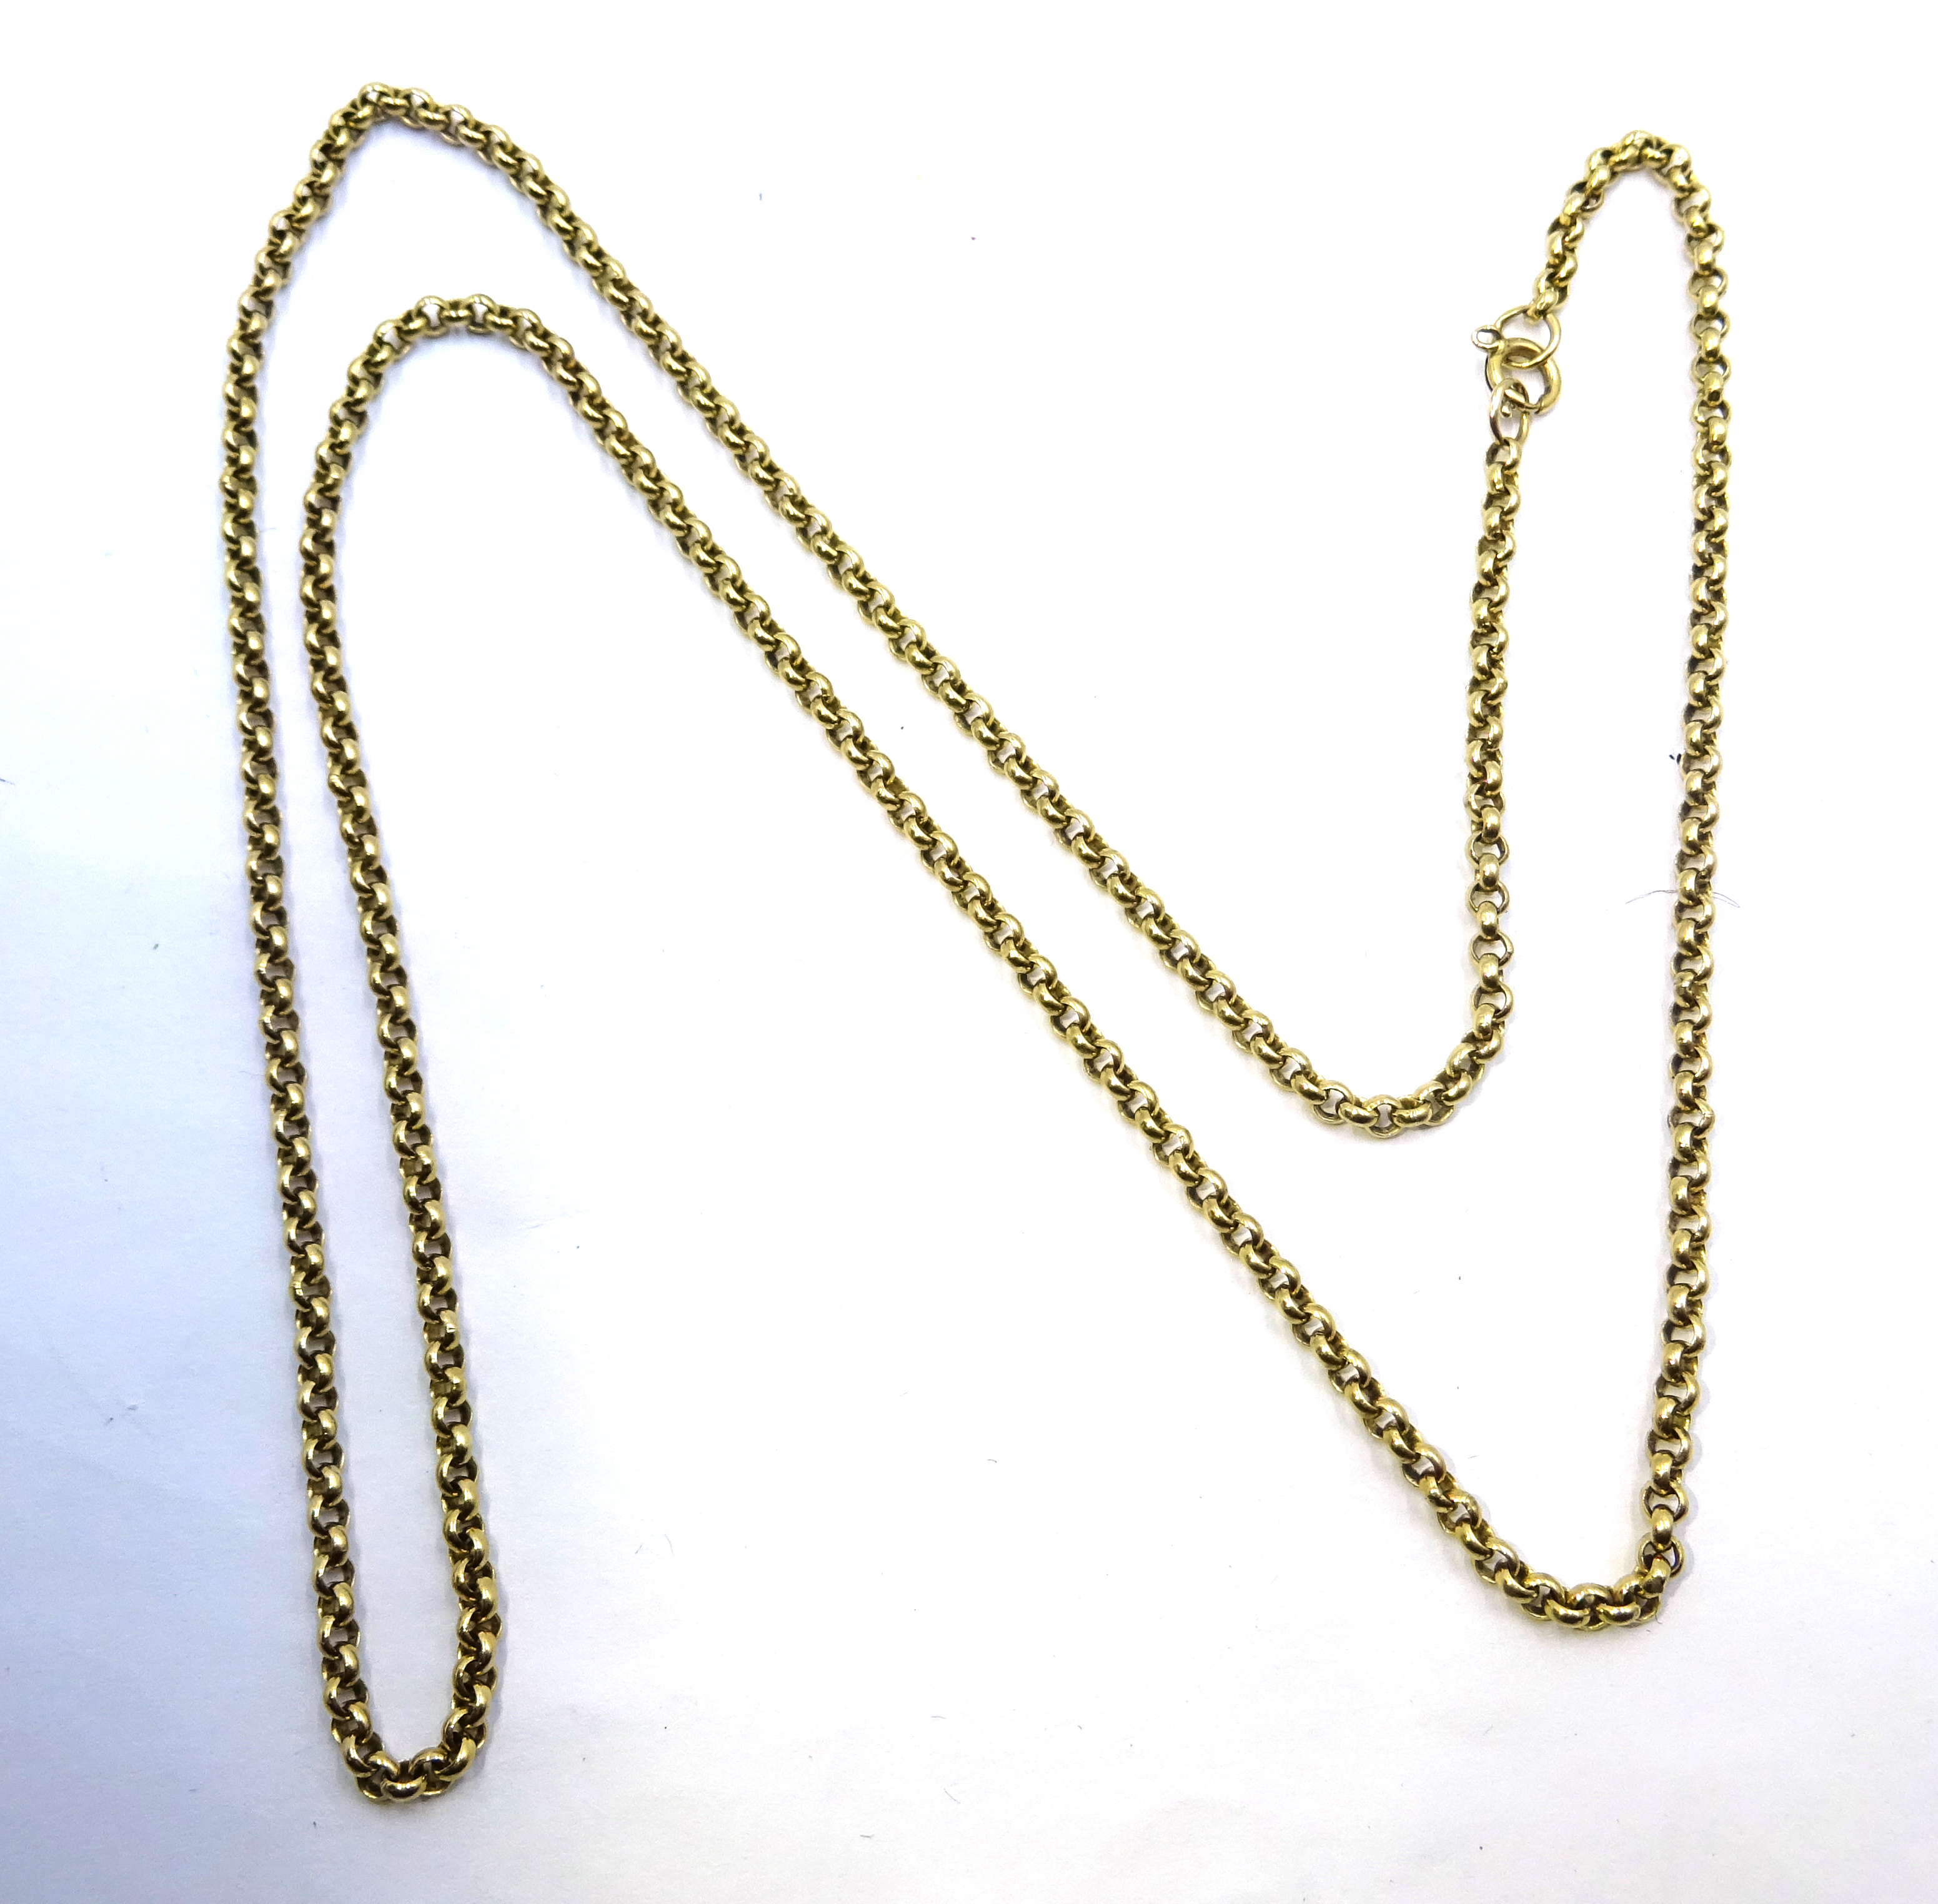 Lot 1044 - 9ct gold cable chain link necklace stamped 375, approx 8.